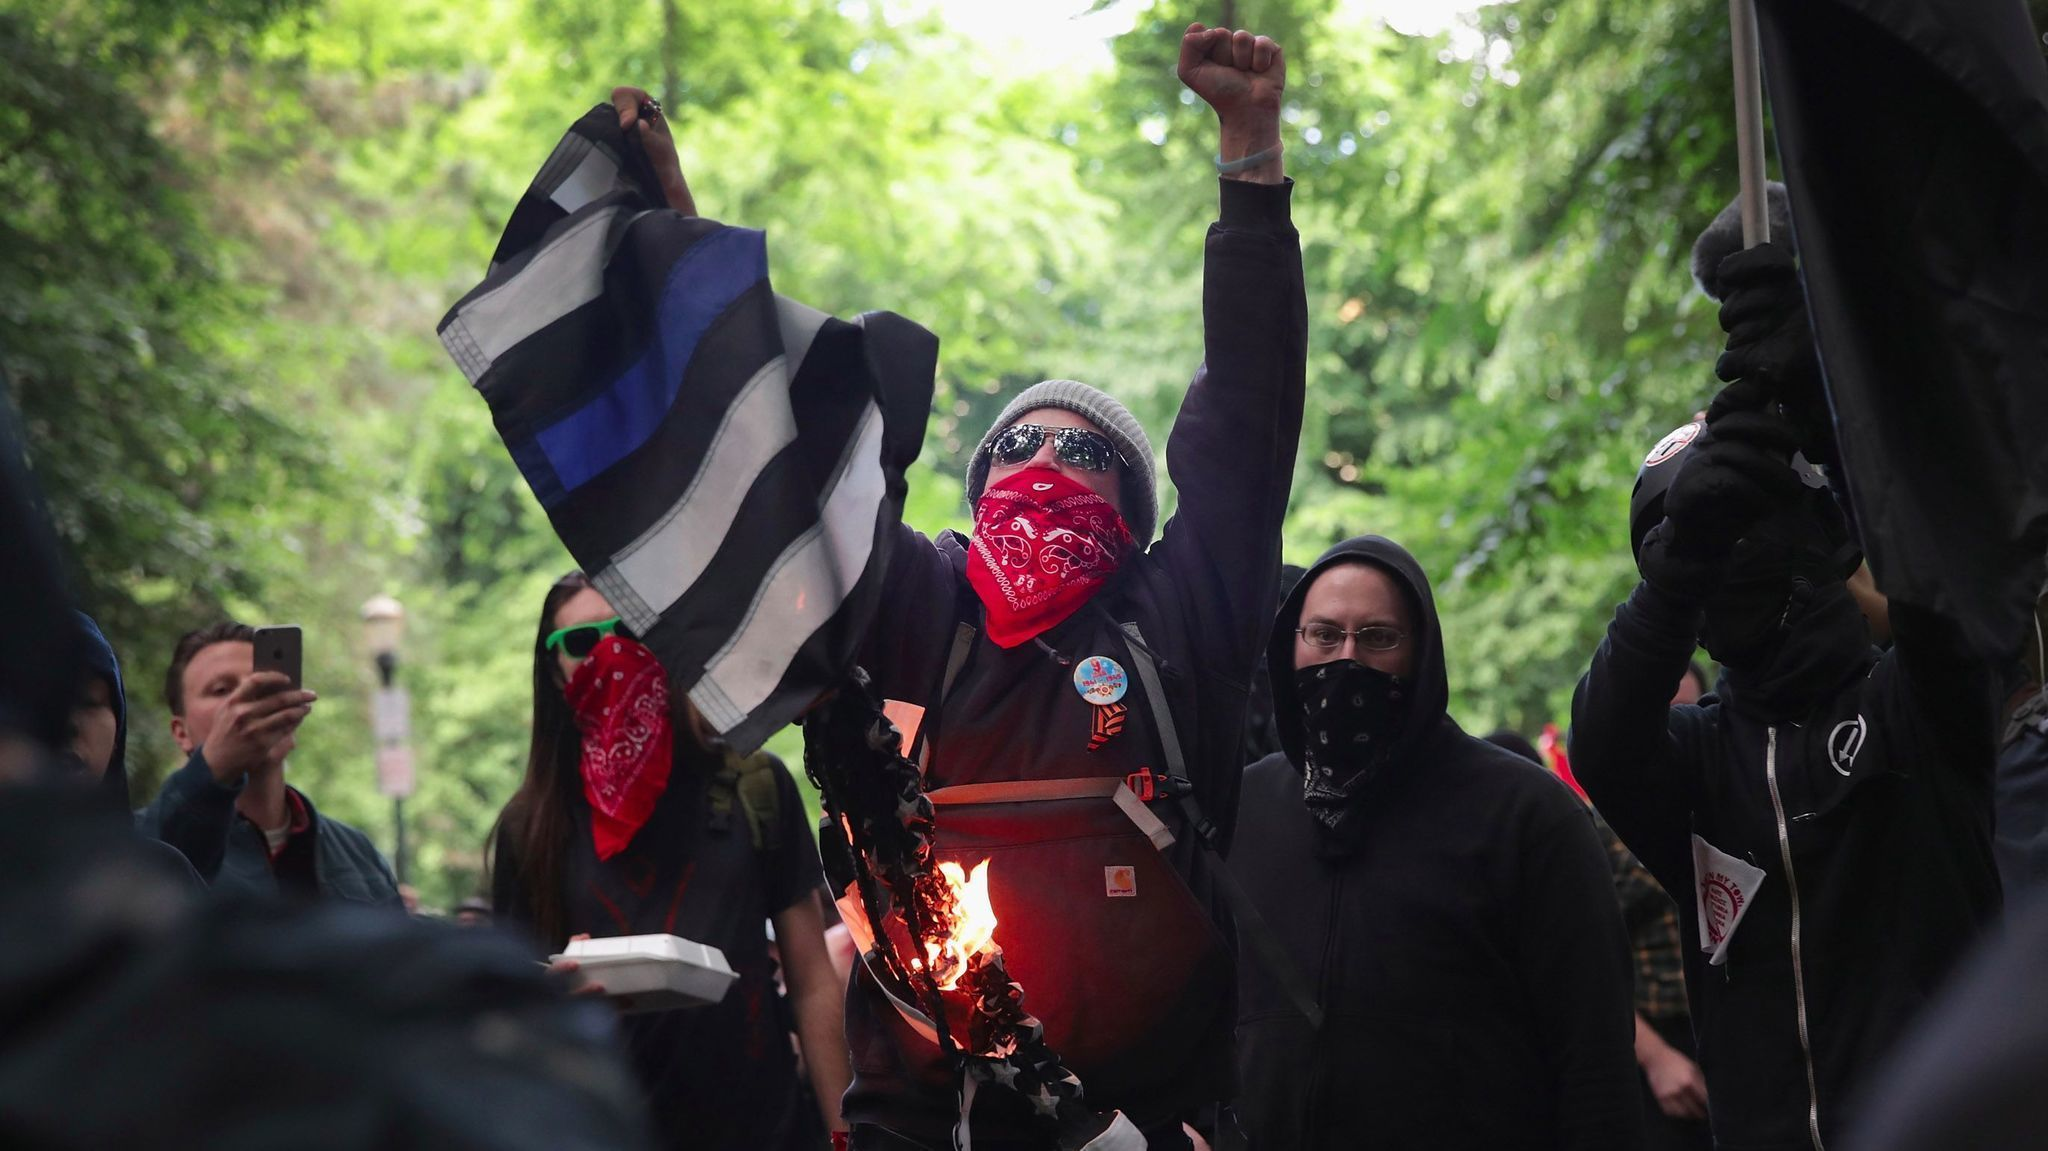 Created At 2017 06 05 0621 Tcash Vaganza 33 Makeup Revolution Demonstrators Began Gathering Sunday In Downtown Portland For A Pro President Trump Free Speech Rally And Pair Of Counter Demonstrations That City